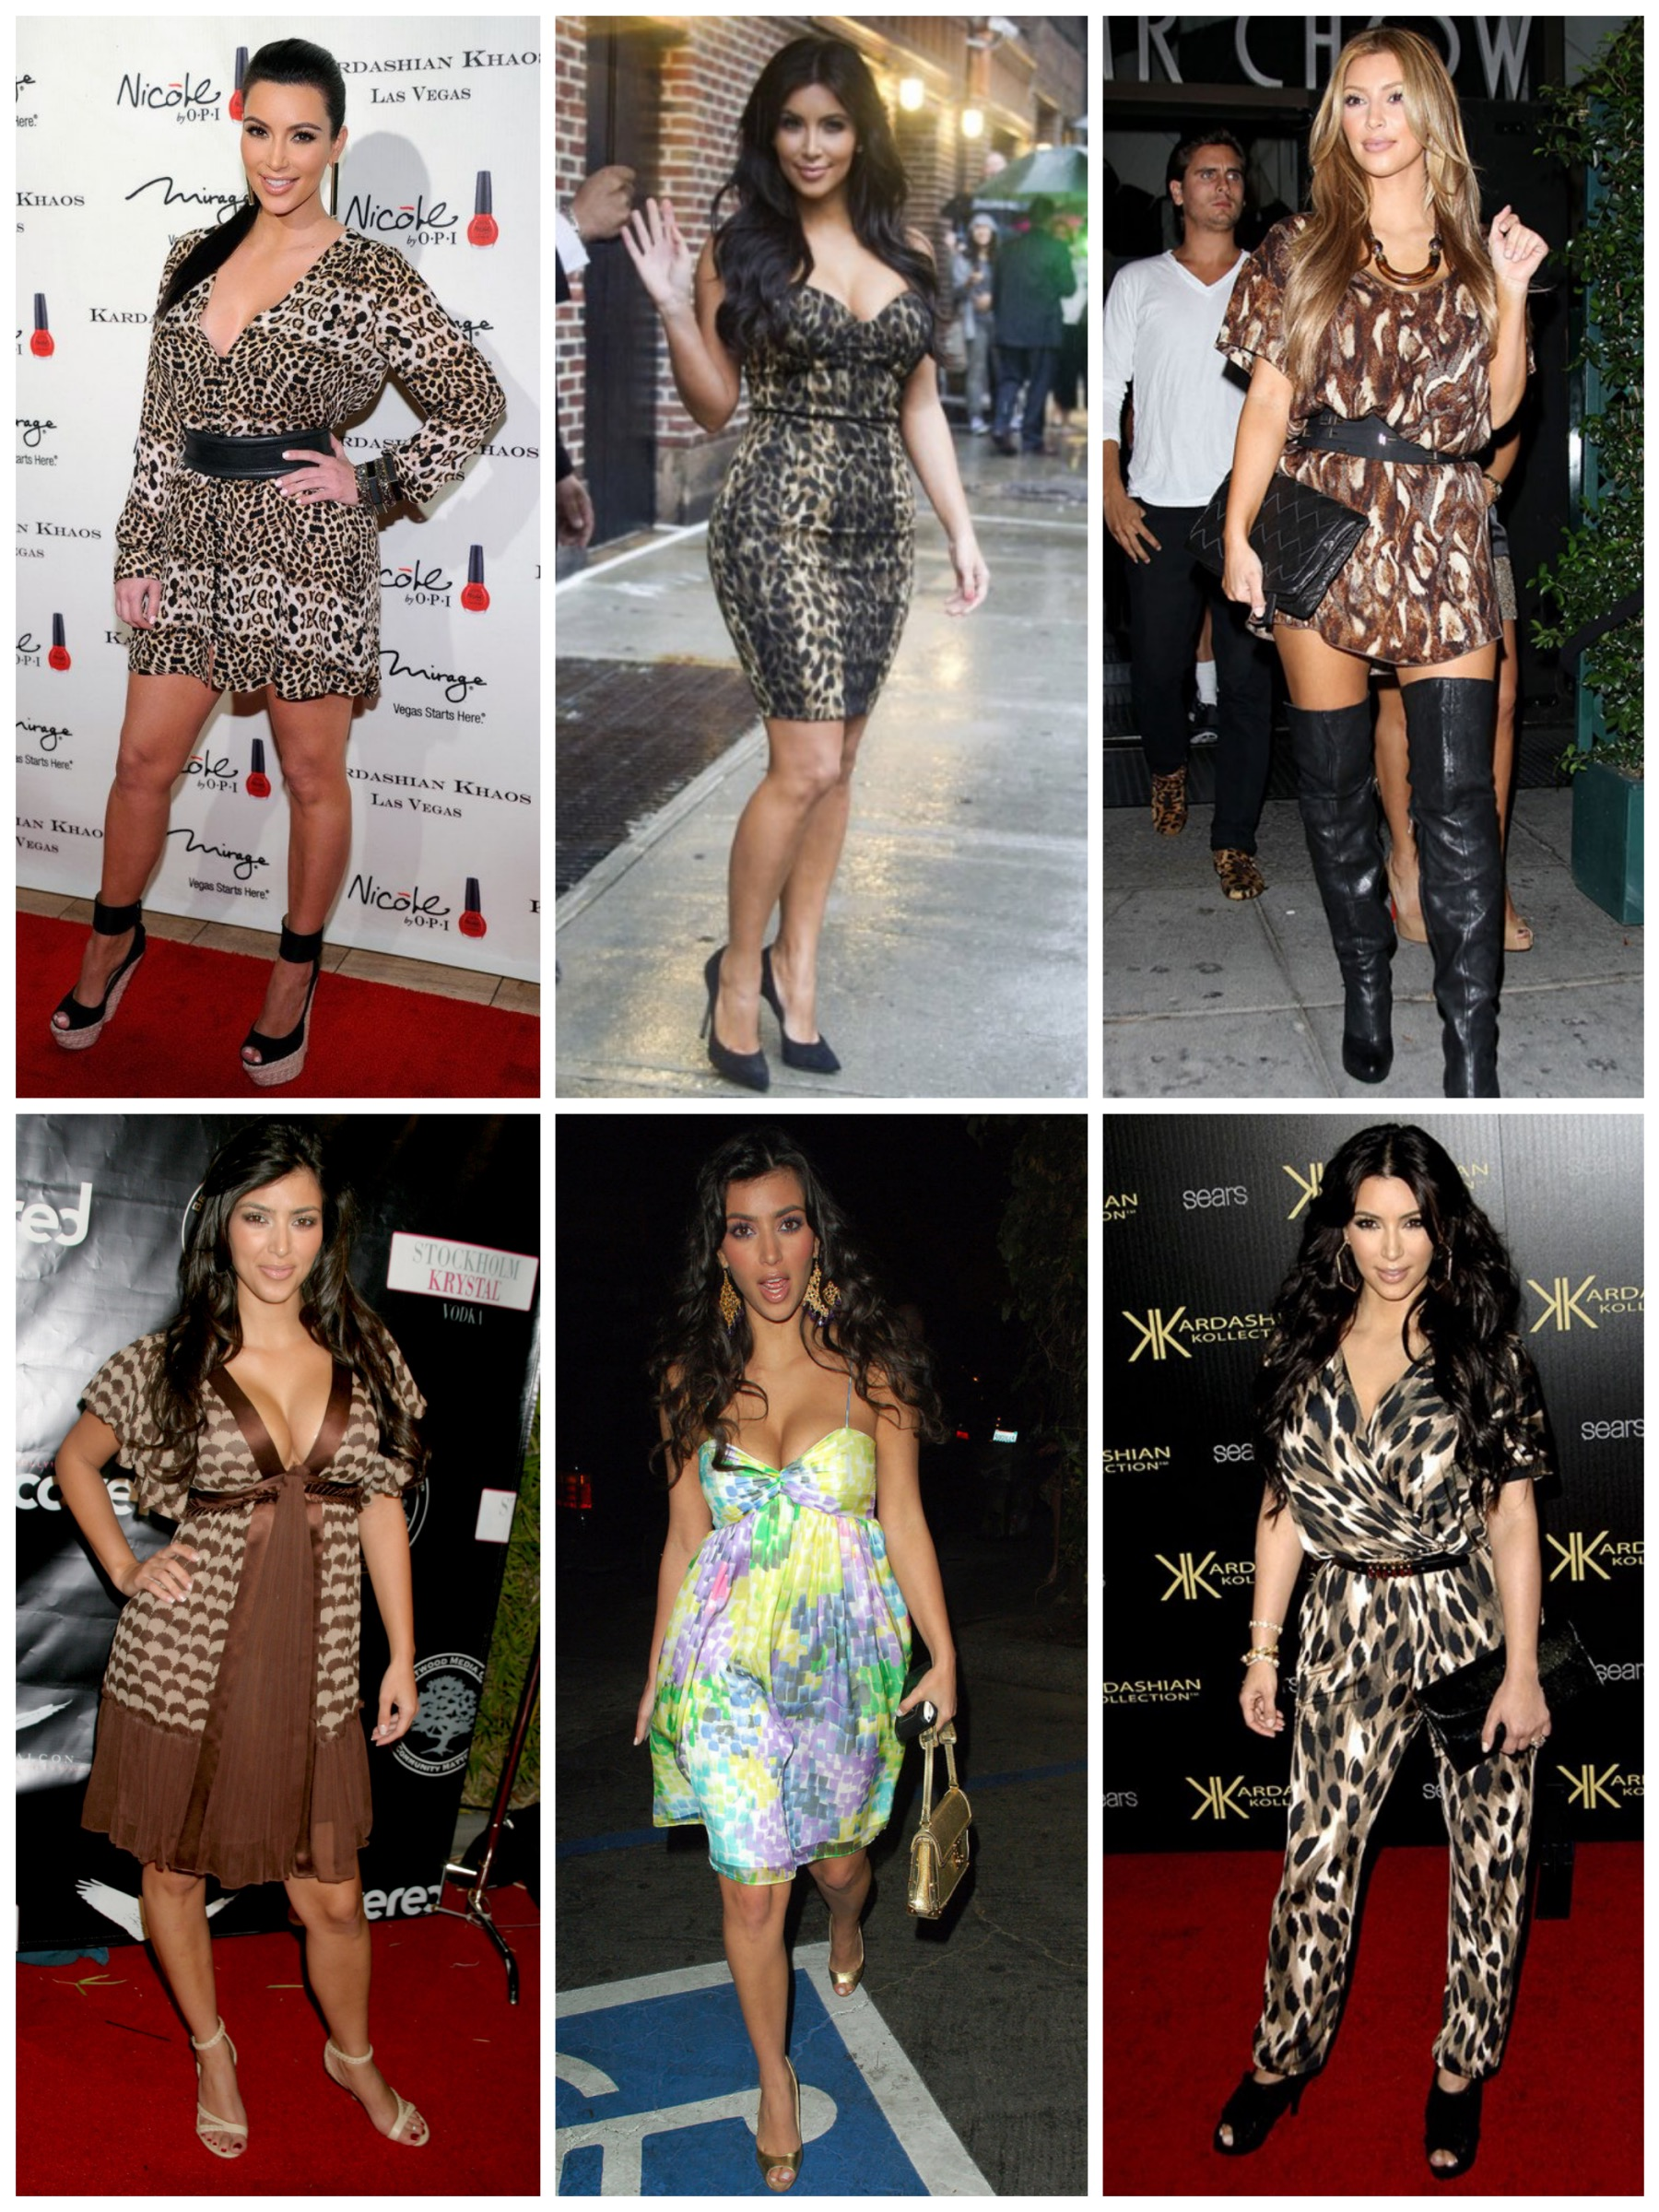 Kim's style before Kanye - A lot of prints